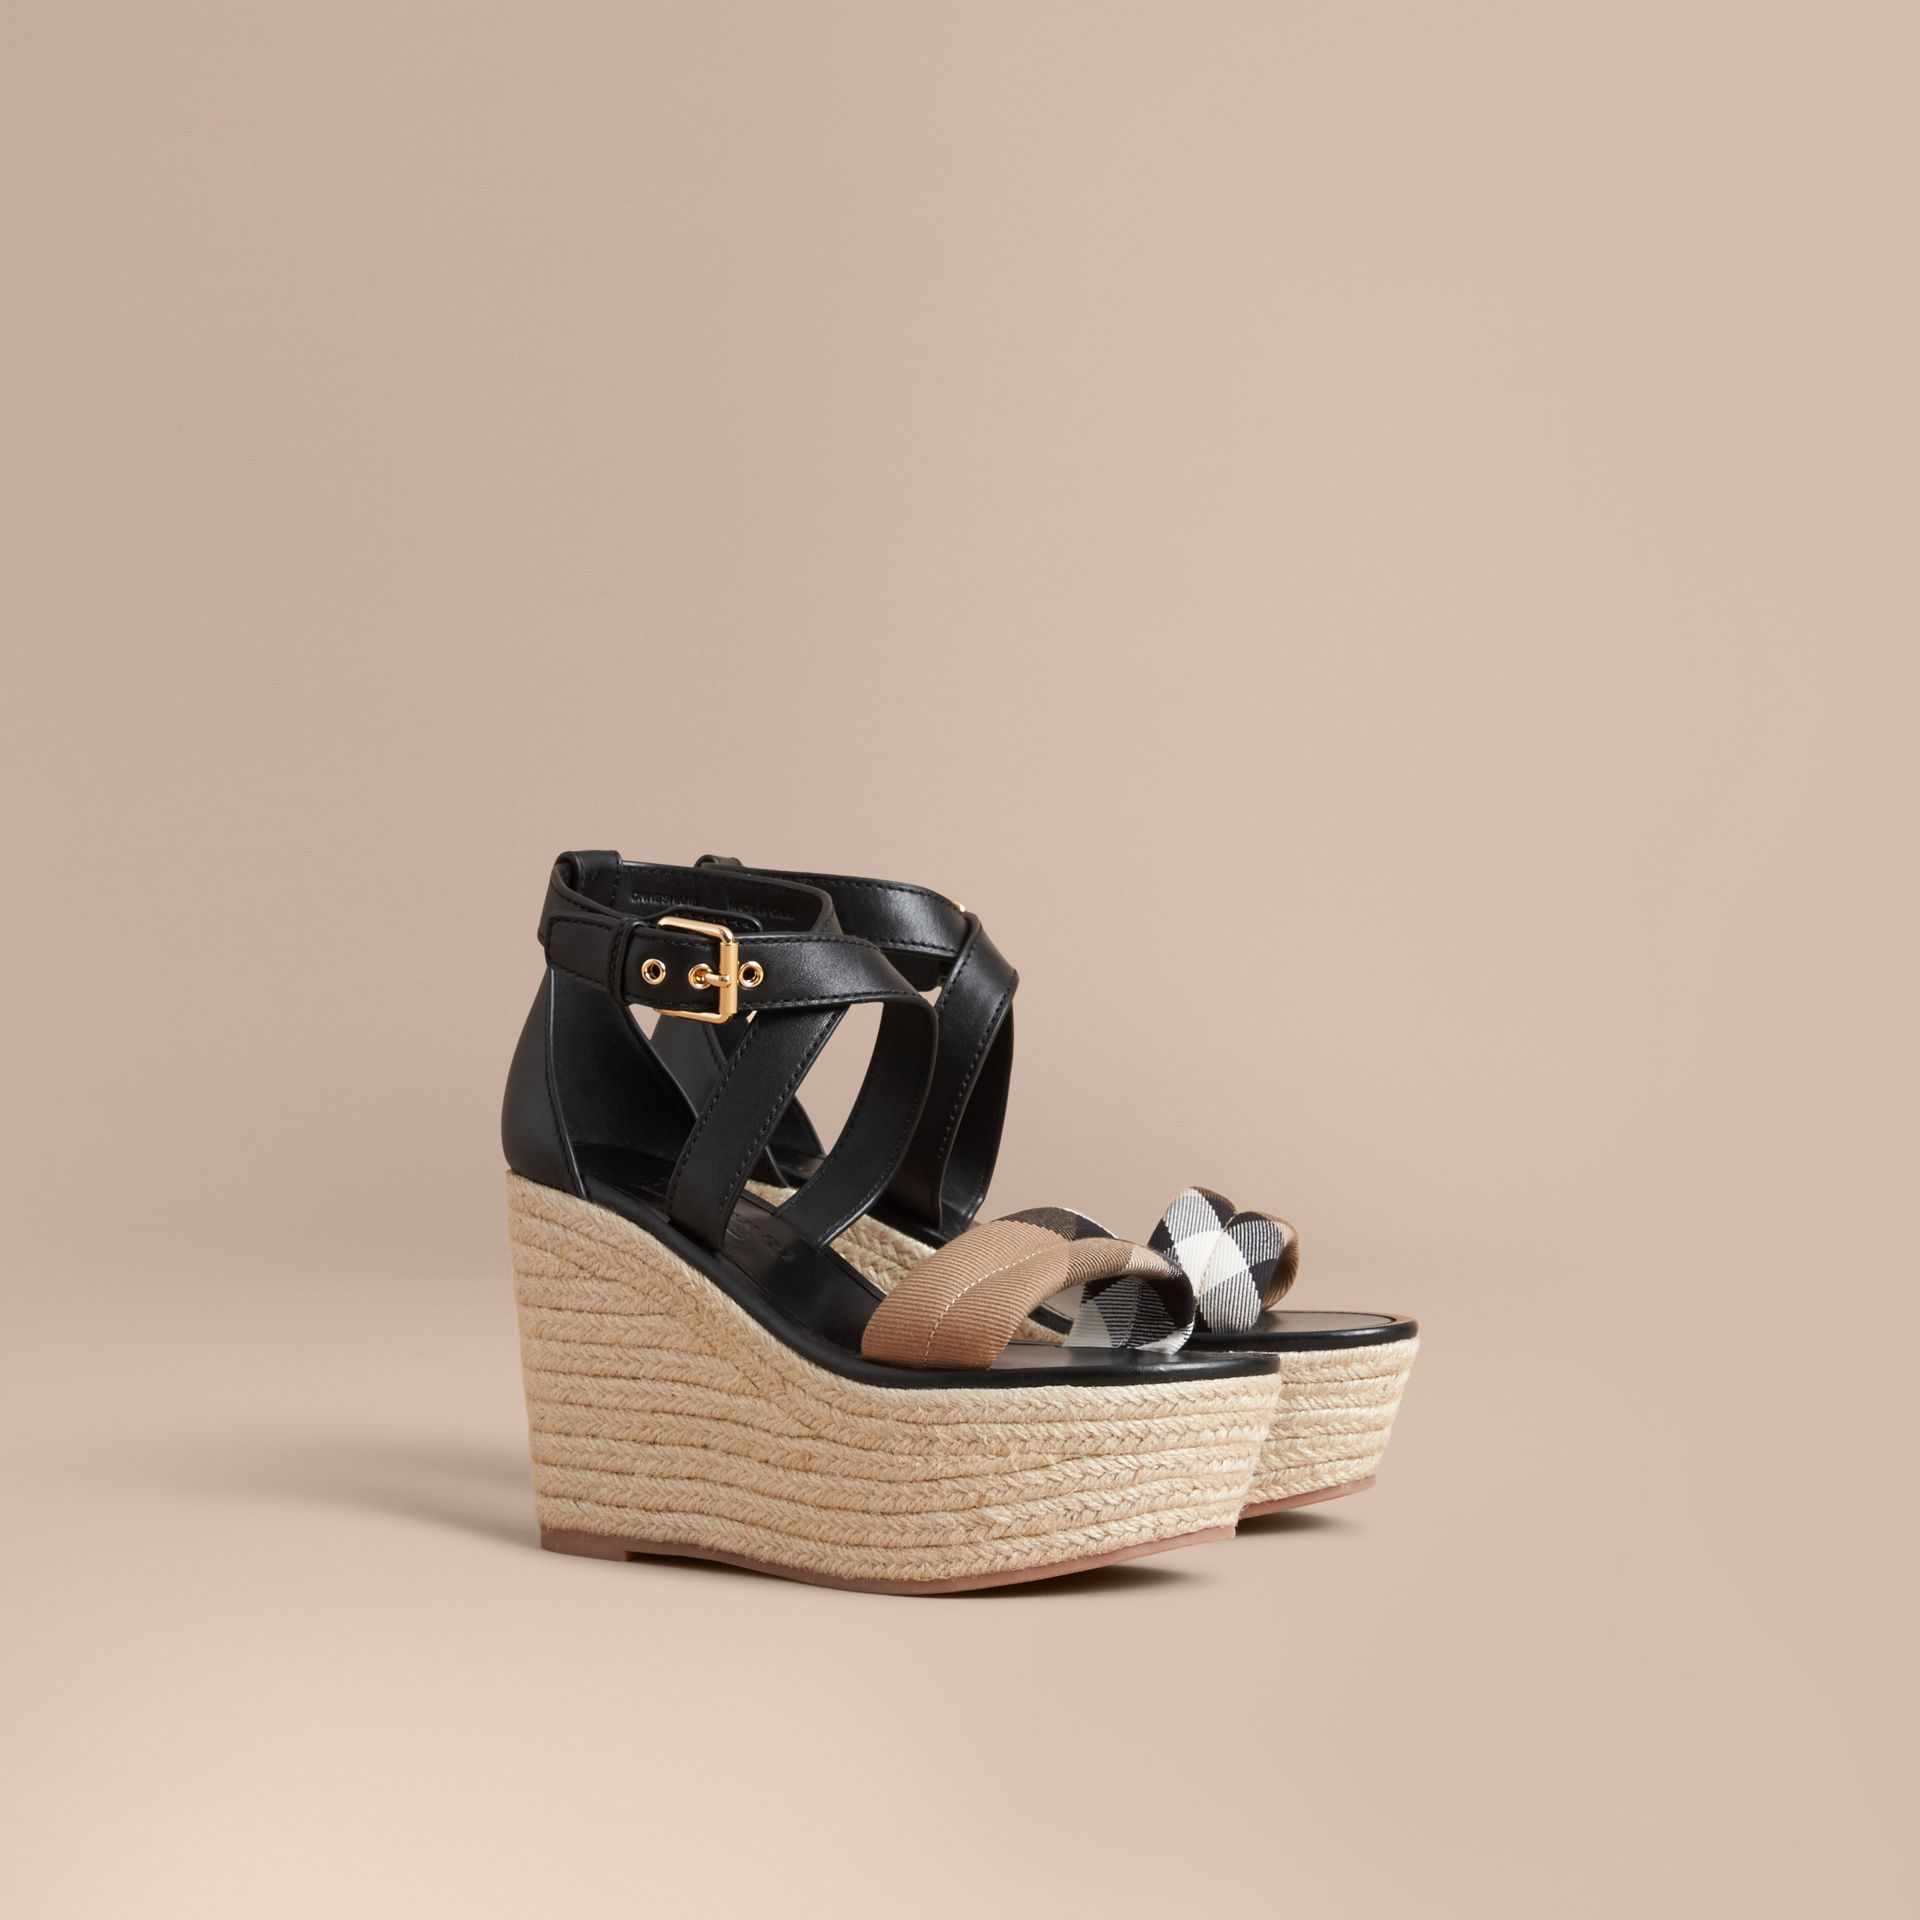 Leather and House Check Platform Espadrille Wedge Sandals in Black - Women | Burberry Singapore - gallery image 1